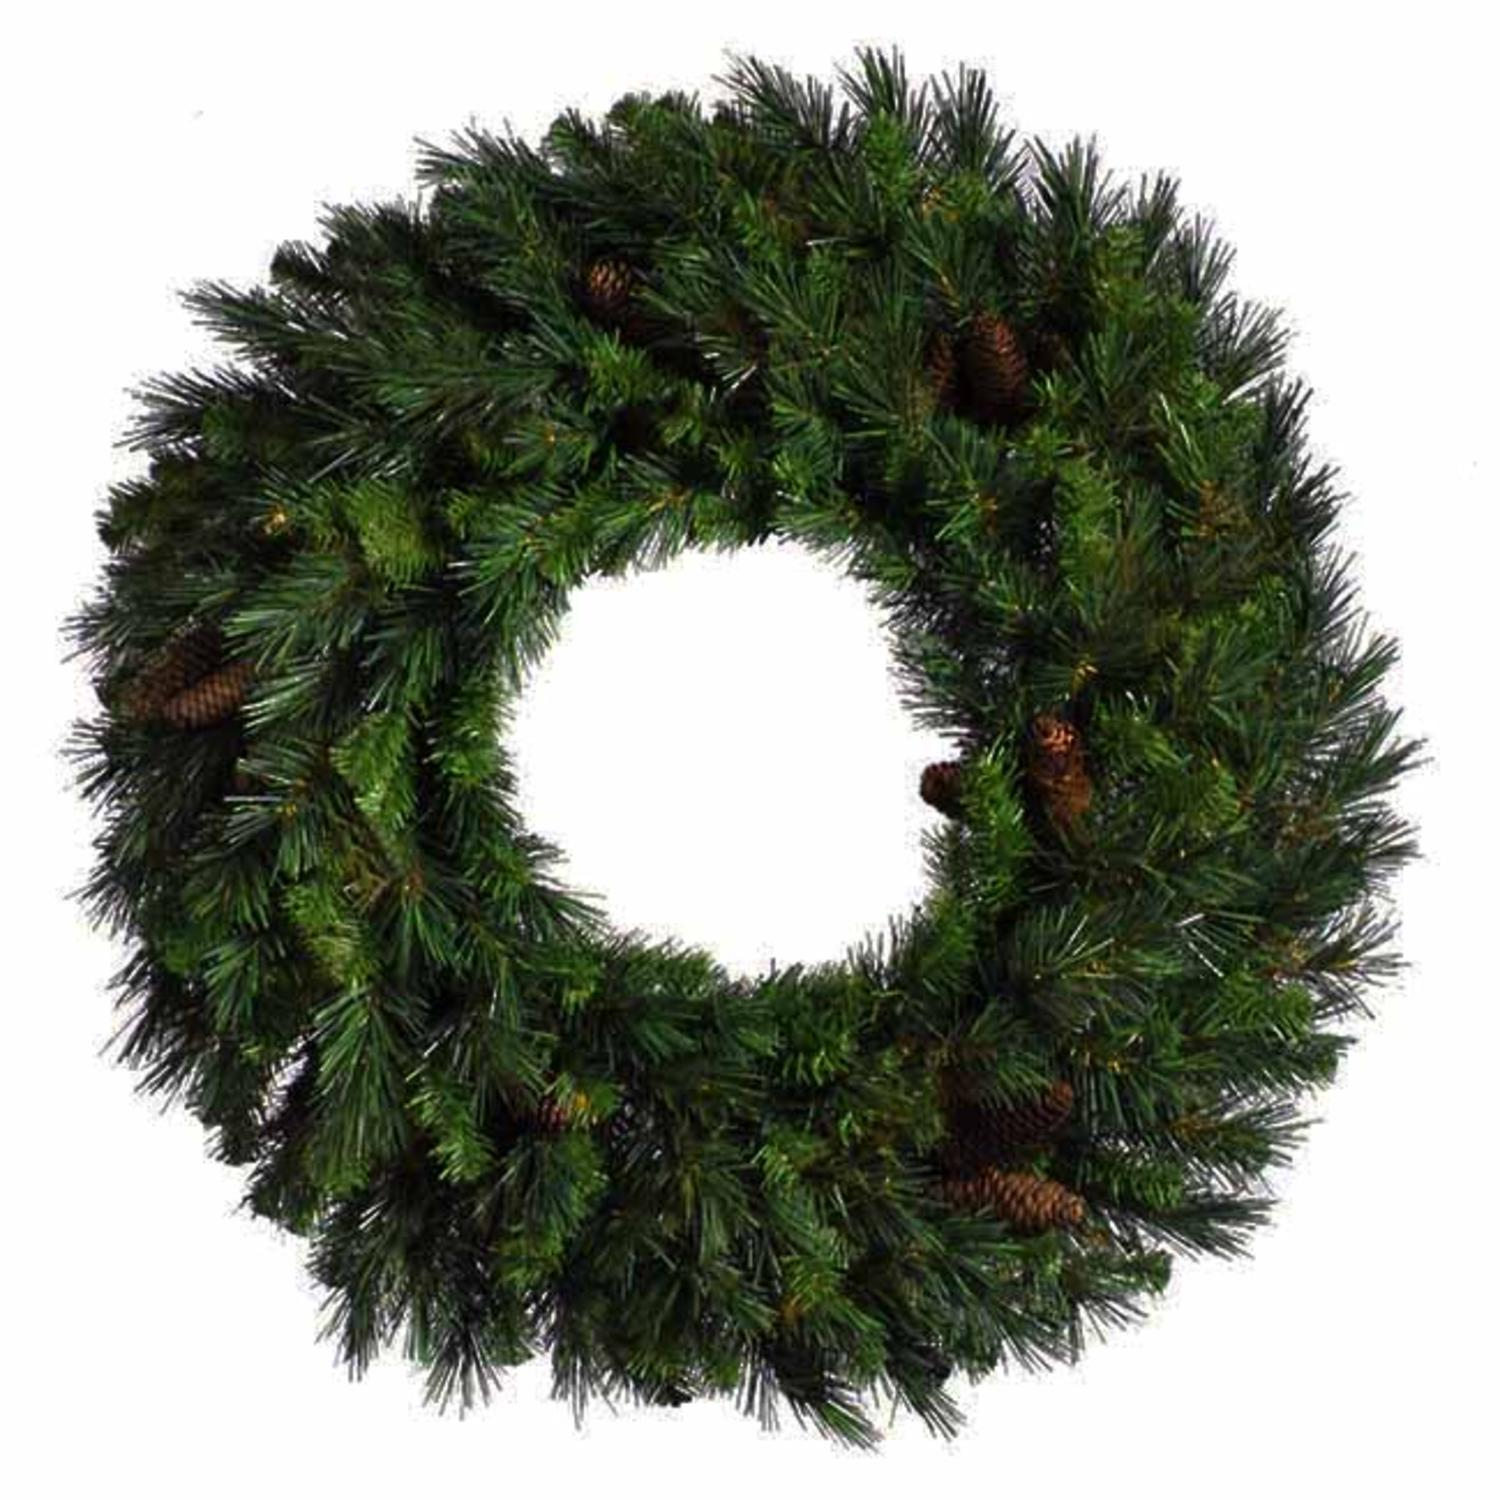 6' Cheyenne Pine Artificial Commercial Christmas Wreath with Pine Cones - Unlit